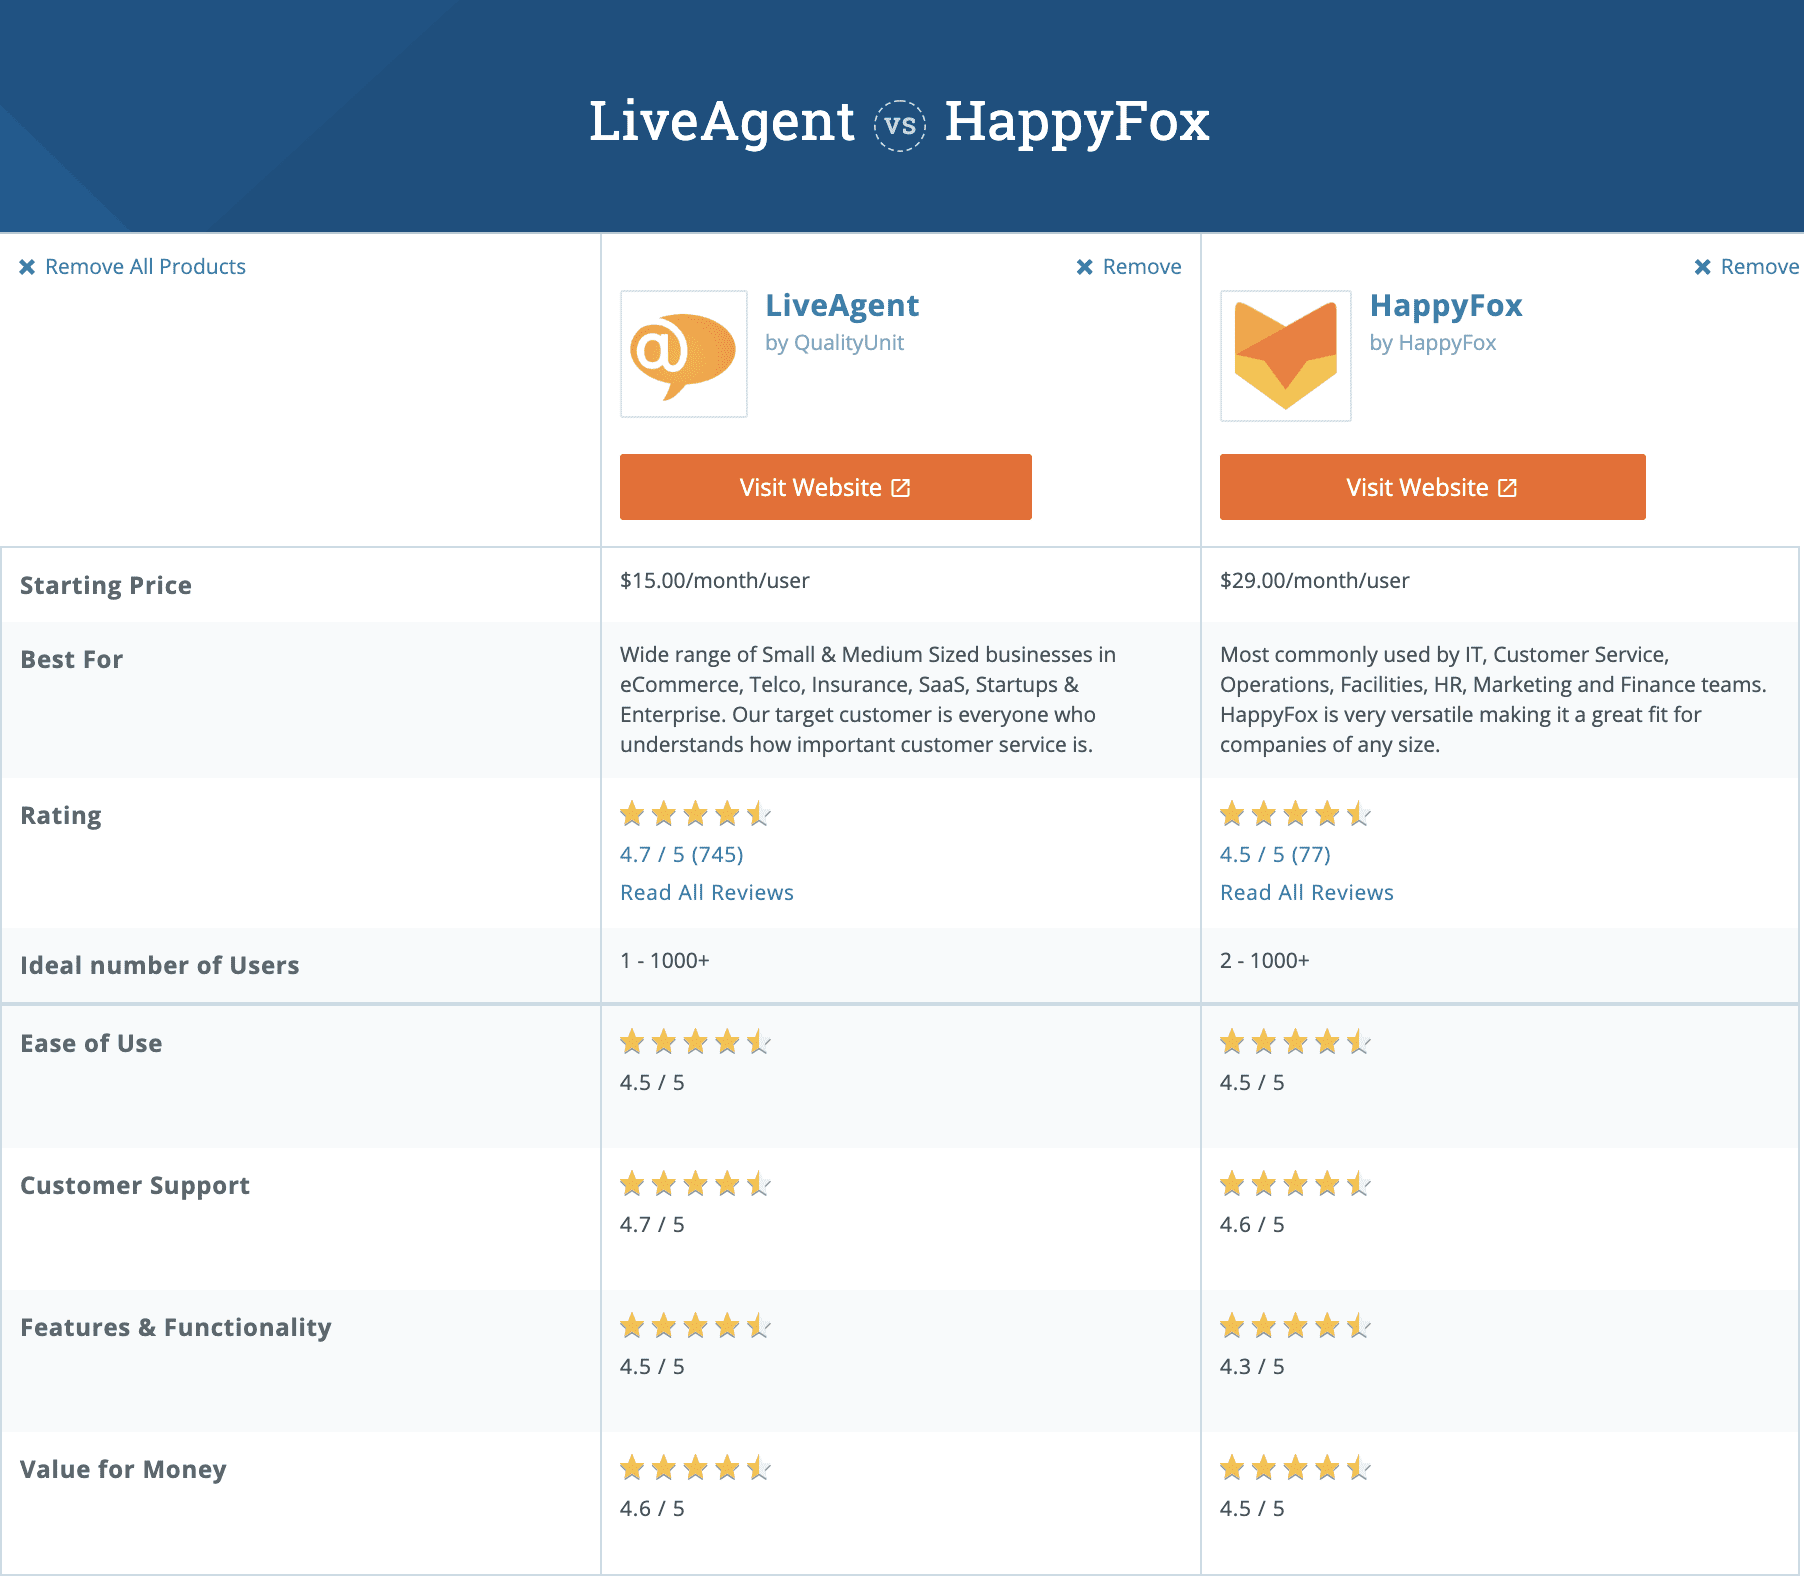 comparison chart between liveagent and happyfox